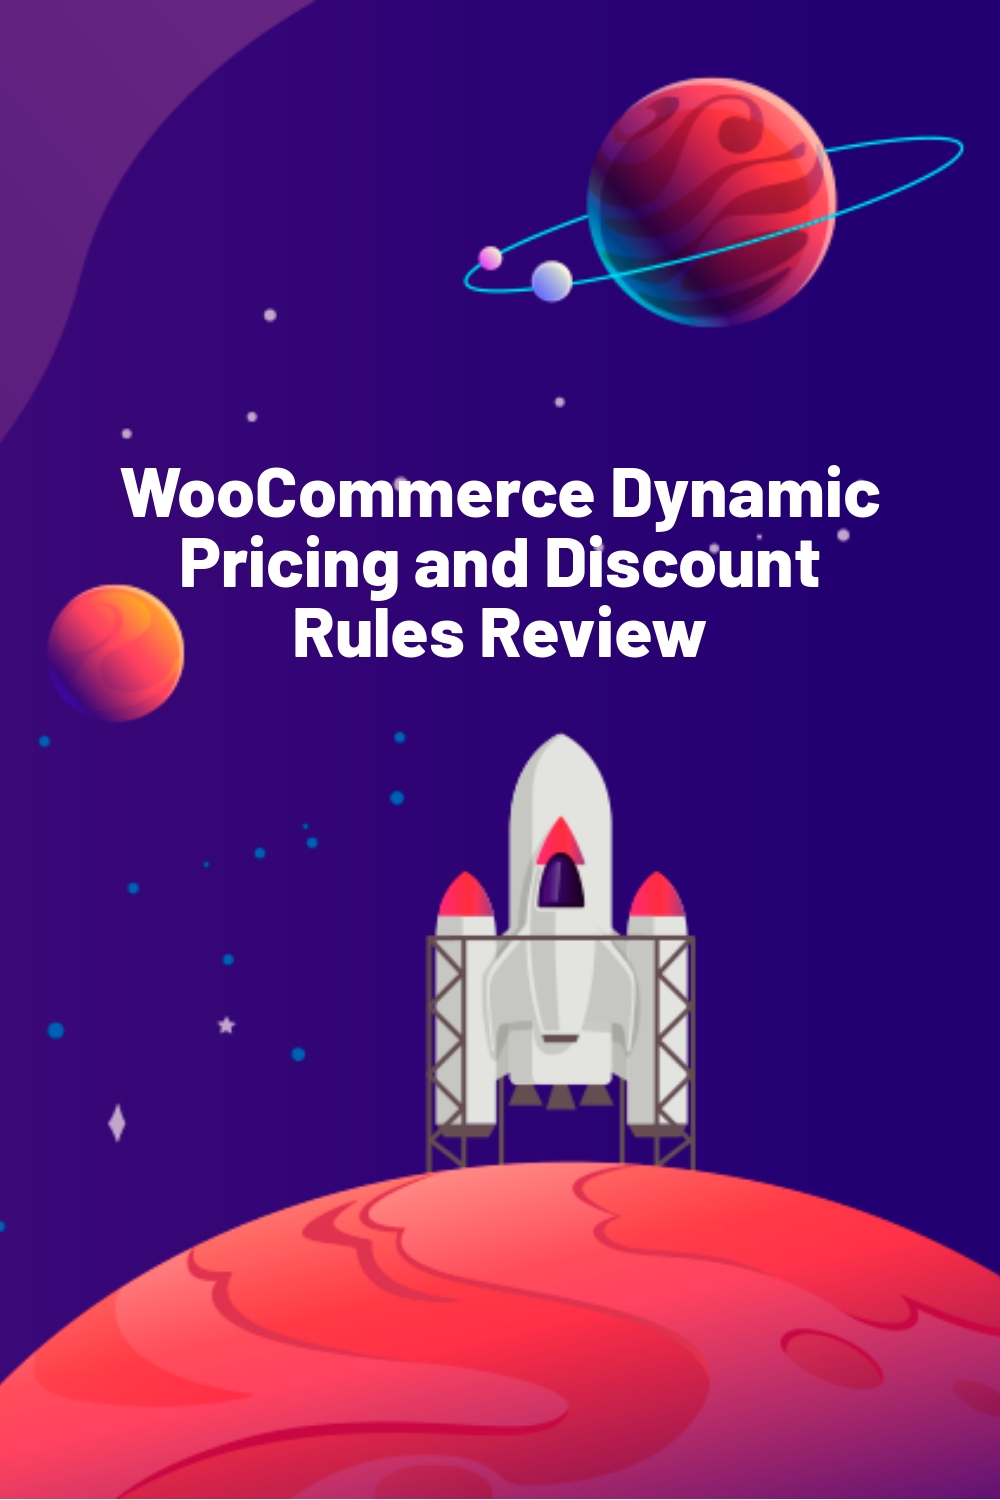 WooCommerce Dynamic Pricing and Discount Rules Review